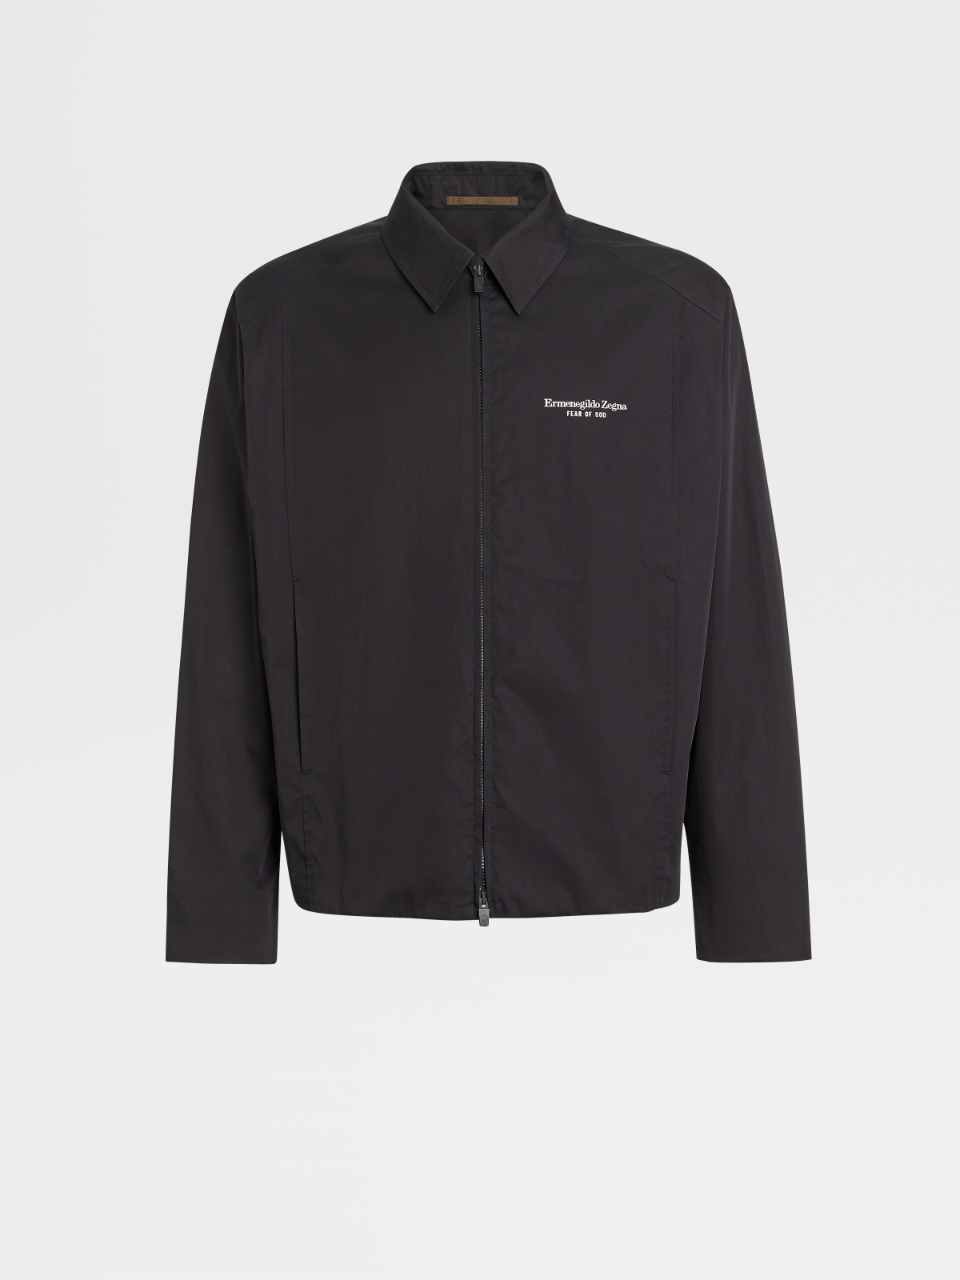 FEAROFGODZEGNA Cotton Blend Short Jacket